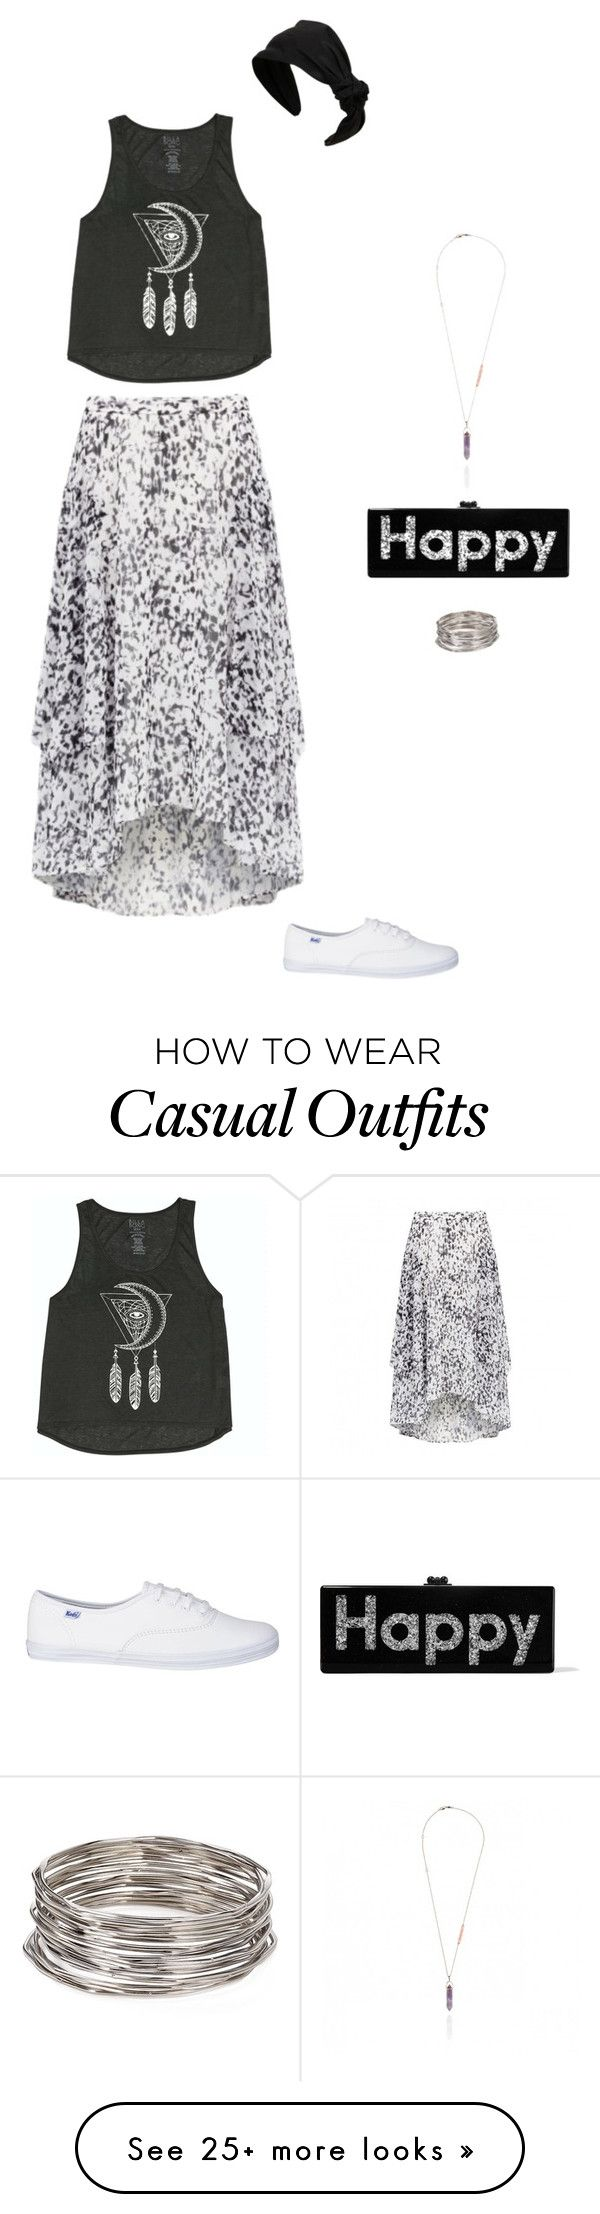 """Casual 14"" by bondril on Polyvore featuring Billabong, Forever New, Aqua, RED Valentino, Edie Parker, women's clothing, women's fashion, women, female and woman"